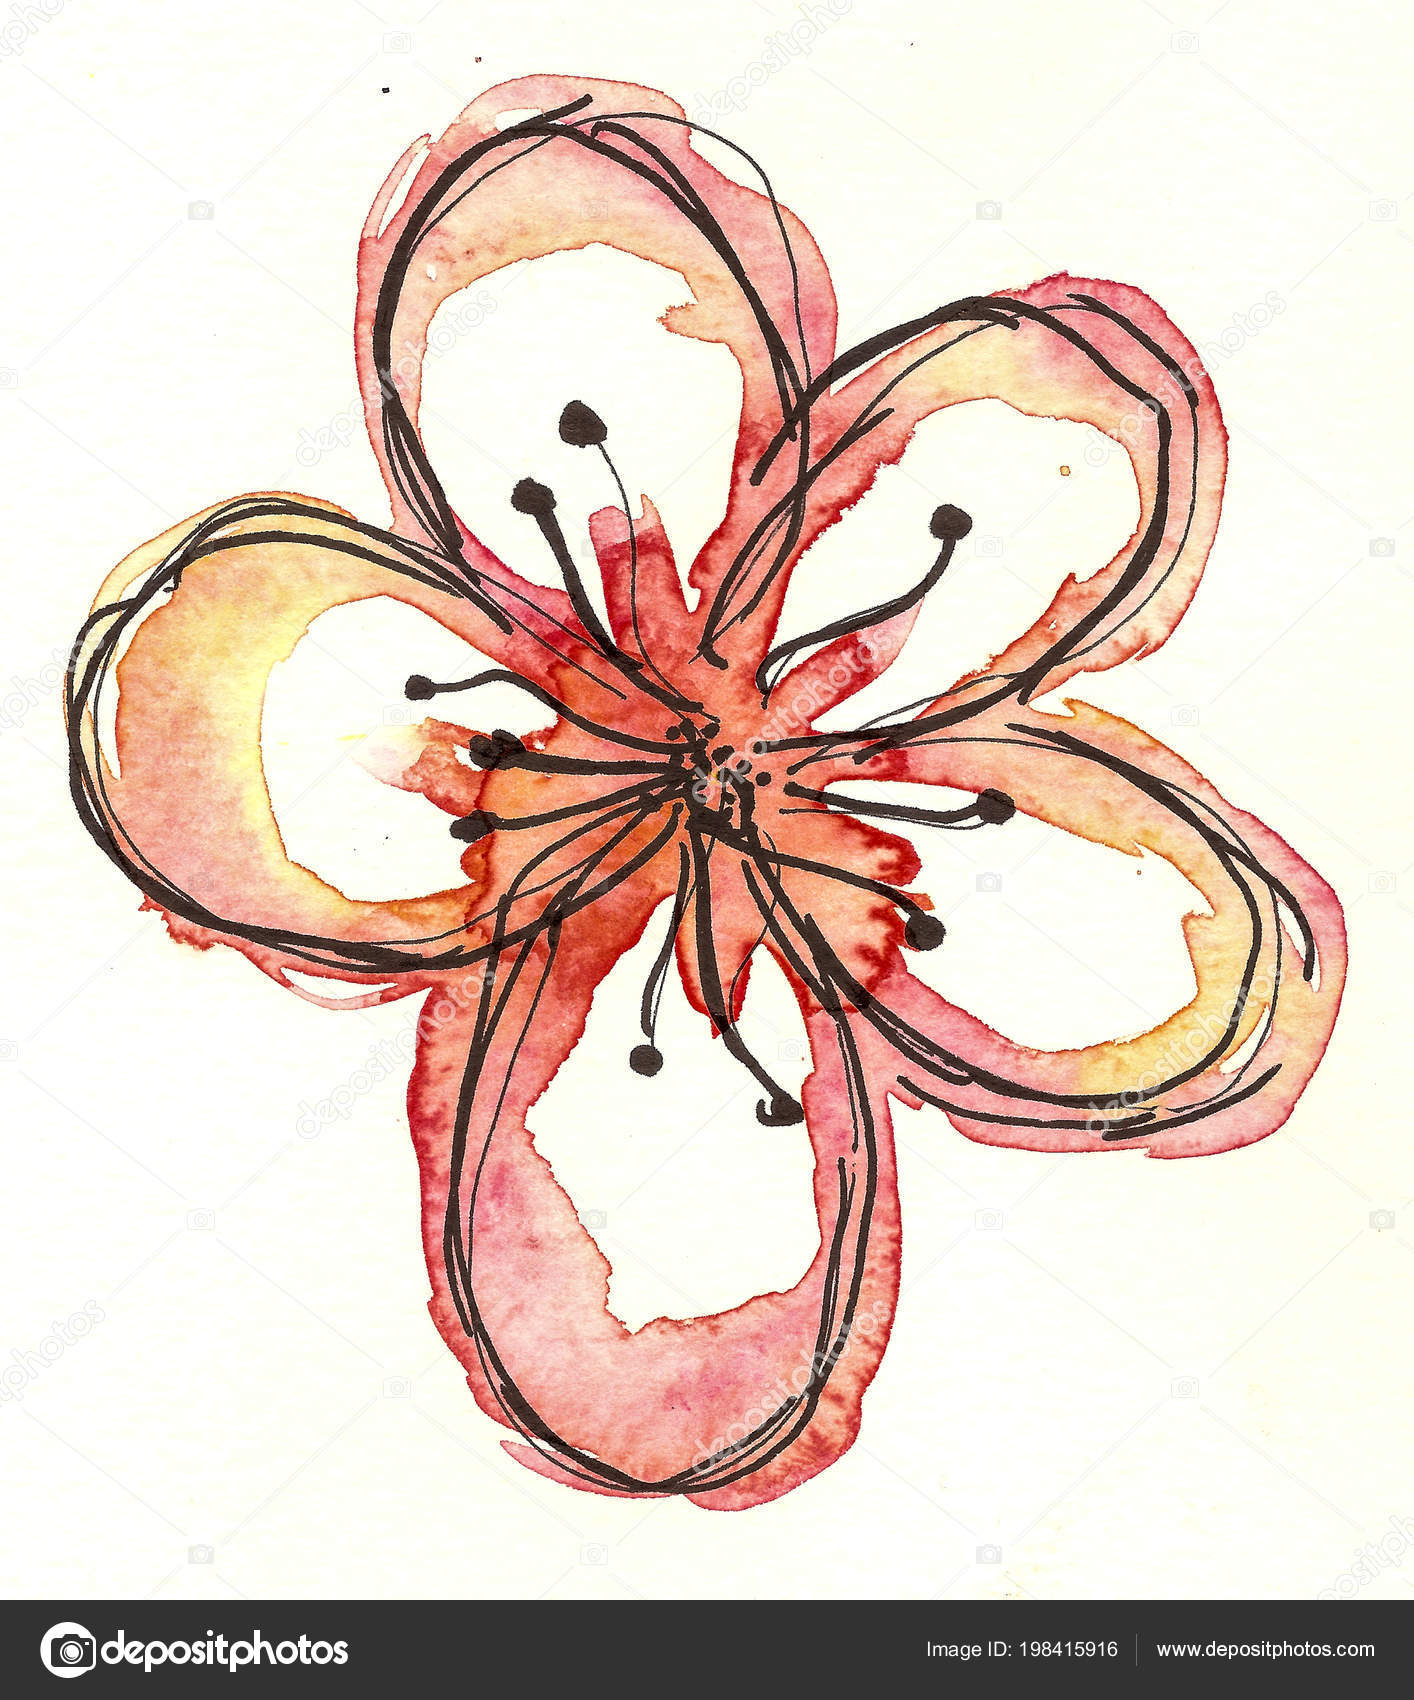 Áˆ Flower Stock Pictures Royalty Free Flower Drawings Images Download On Depositphotos